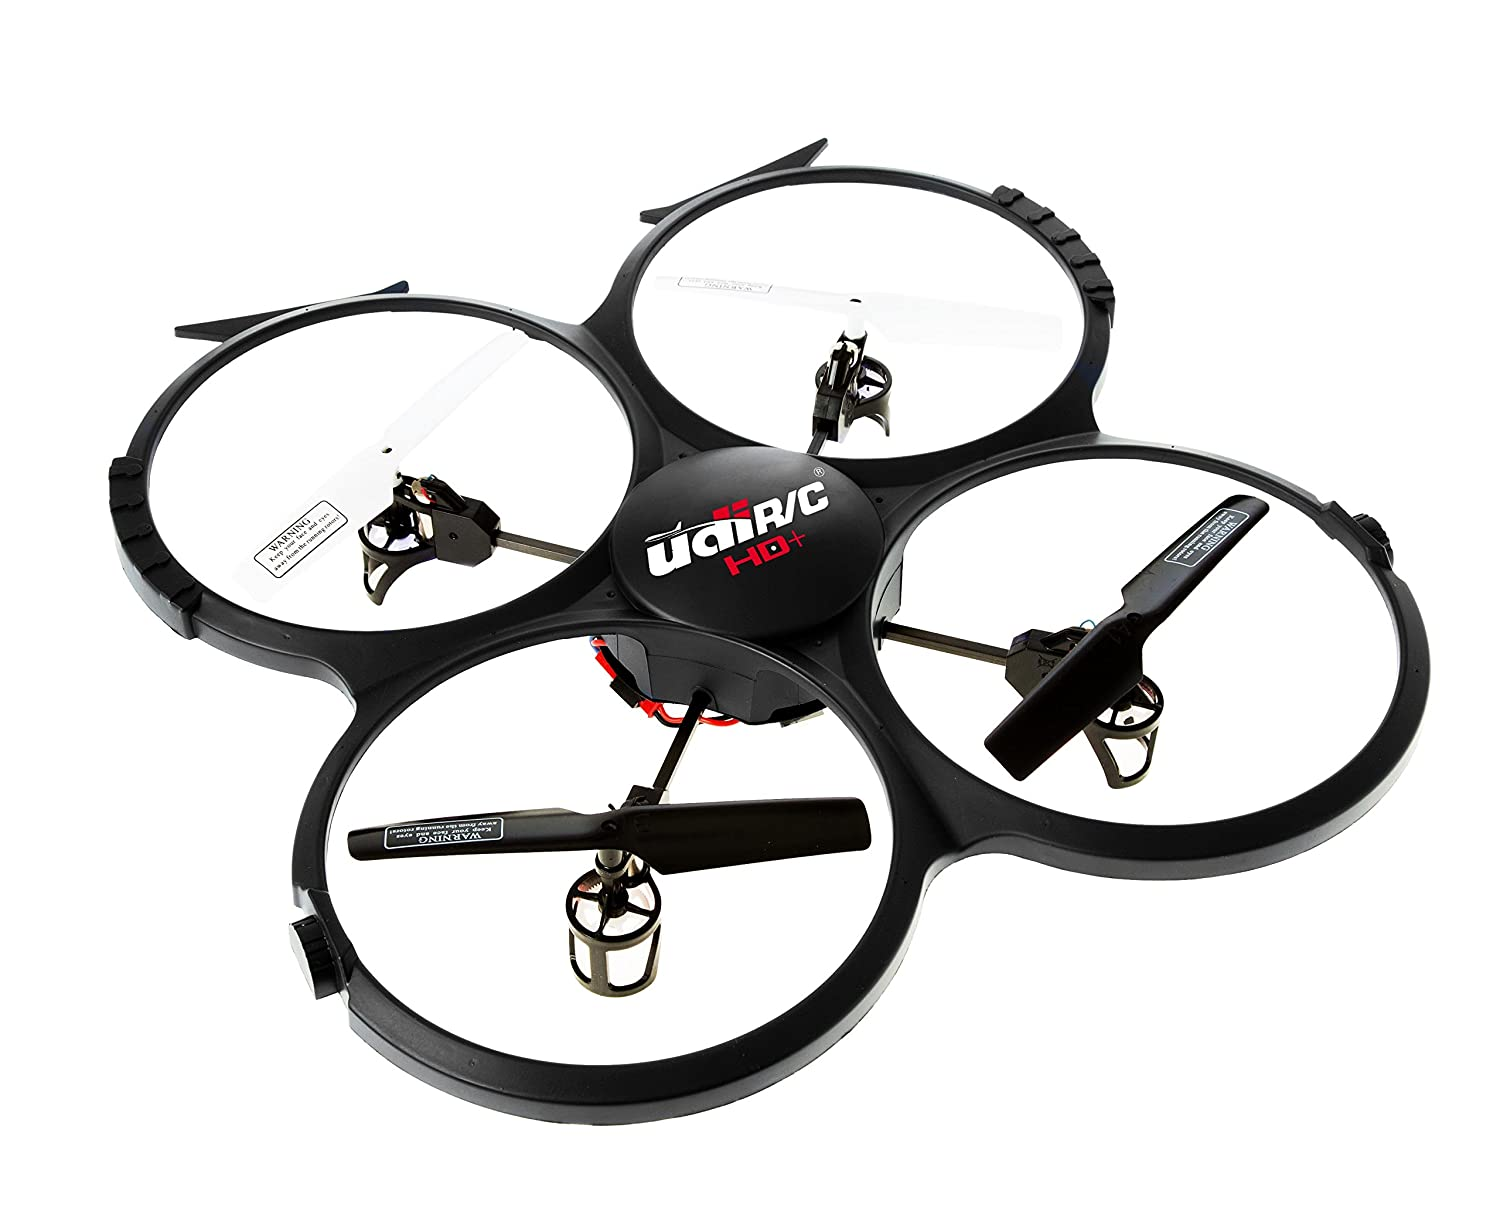 UDI 818A HD+ RC Quadcopter Drone with HD Camera.